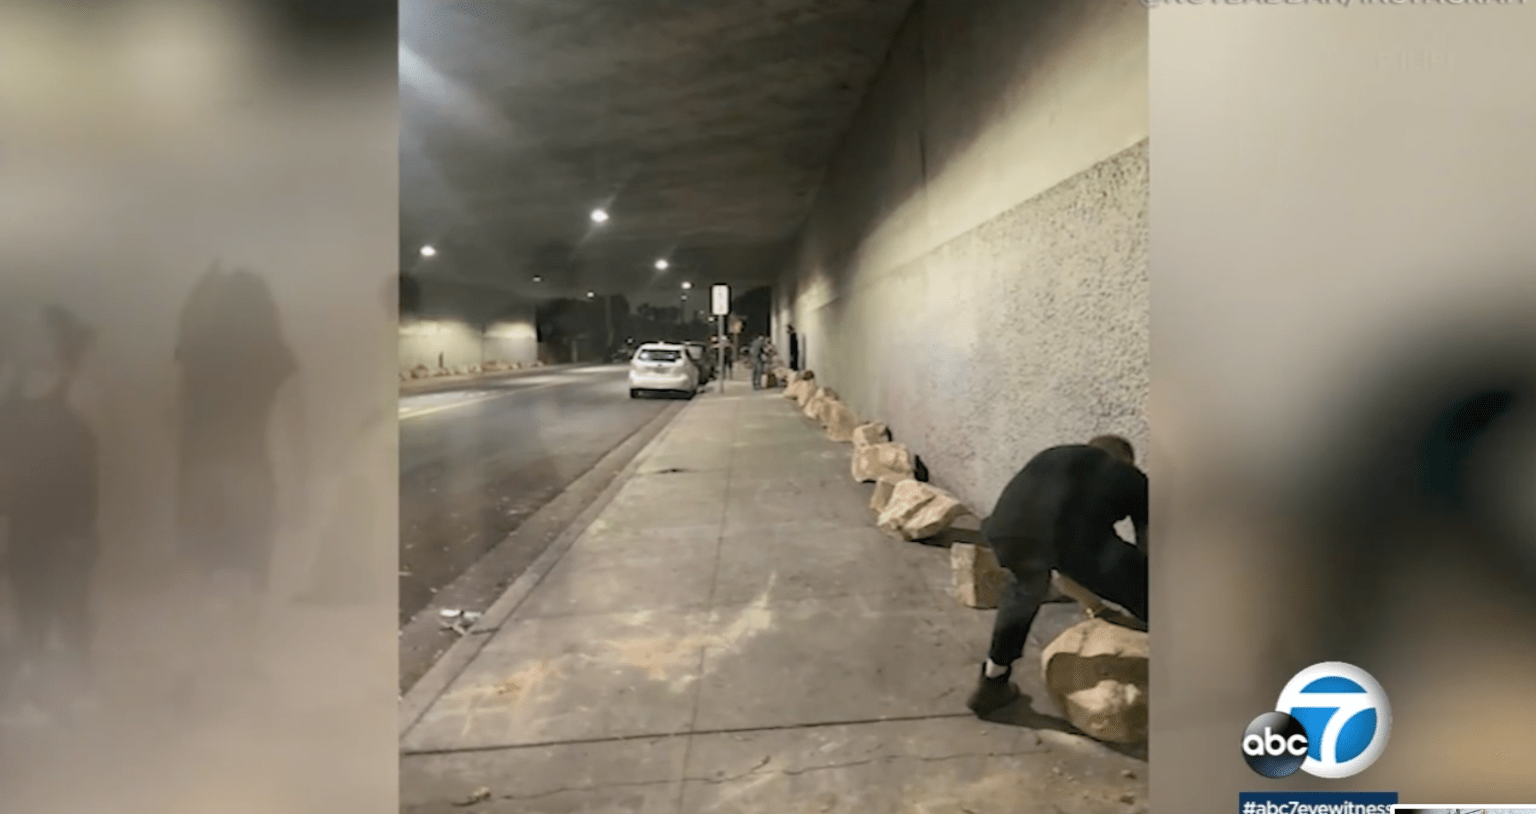 L.A. refused to handle homeless problem, so locals handled it themselves - and were threatened with criminal charges